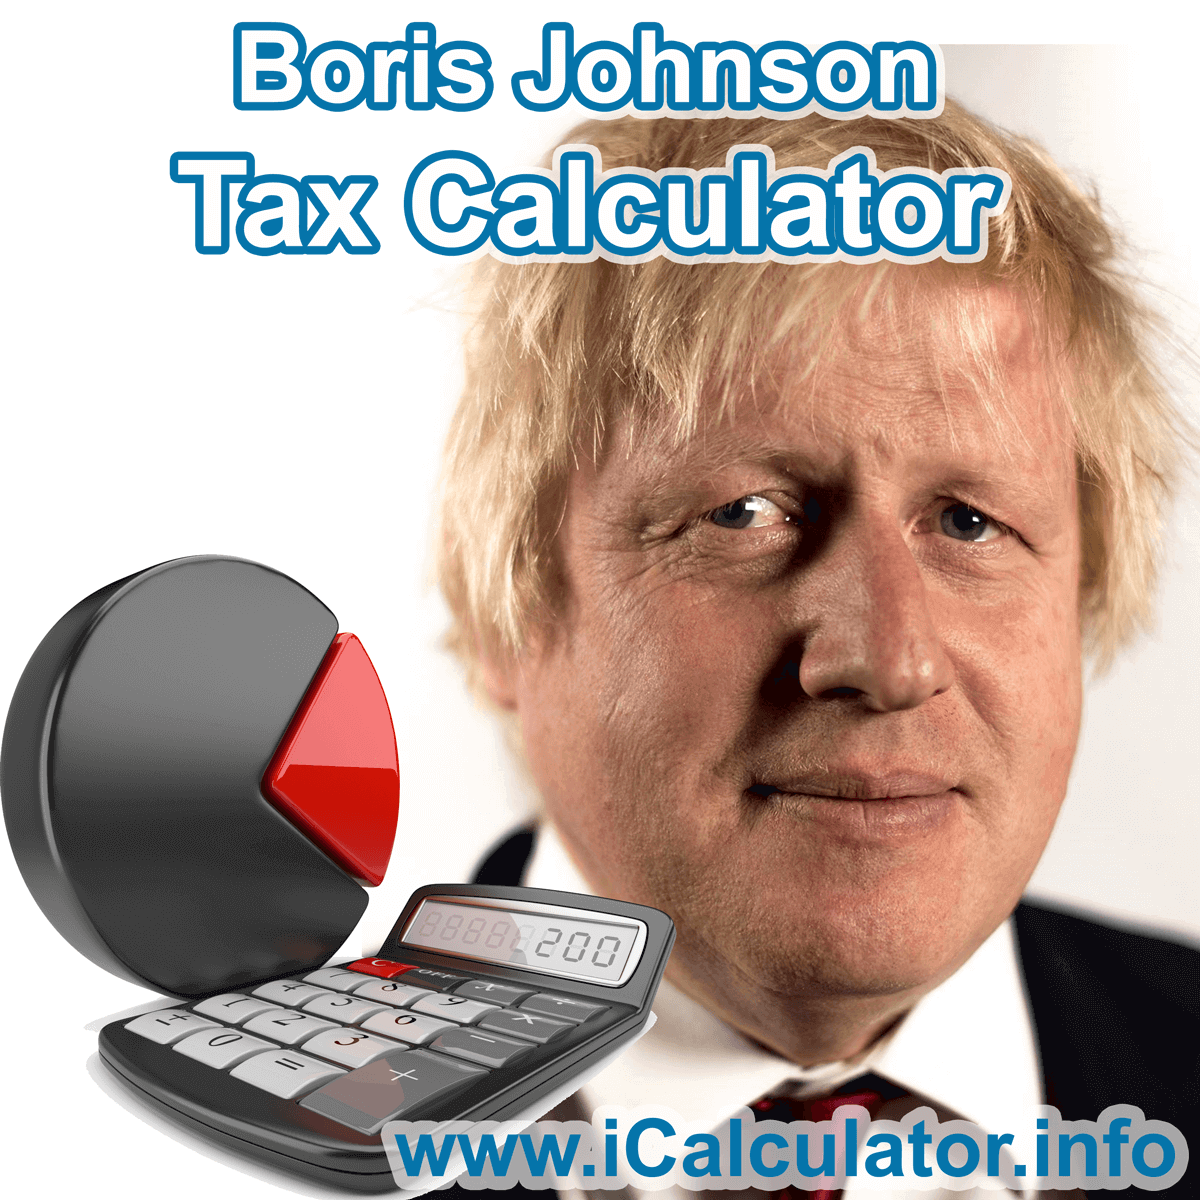 Boris Johnson tax Calculator